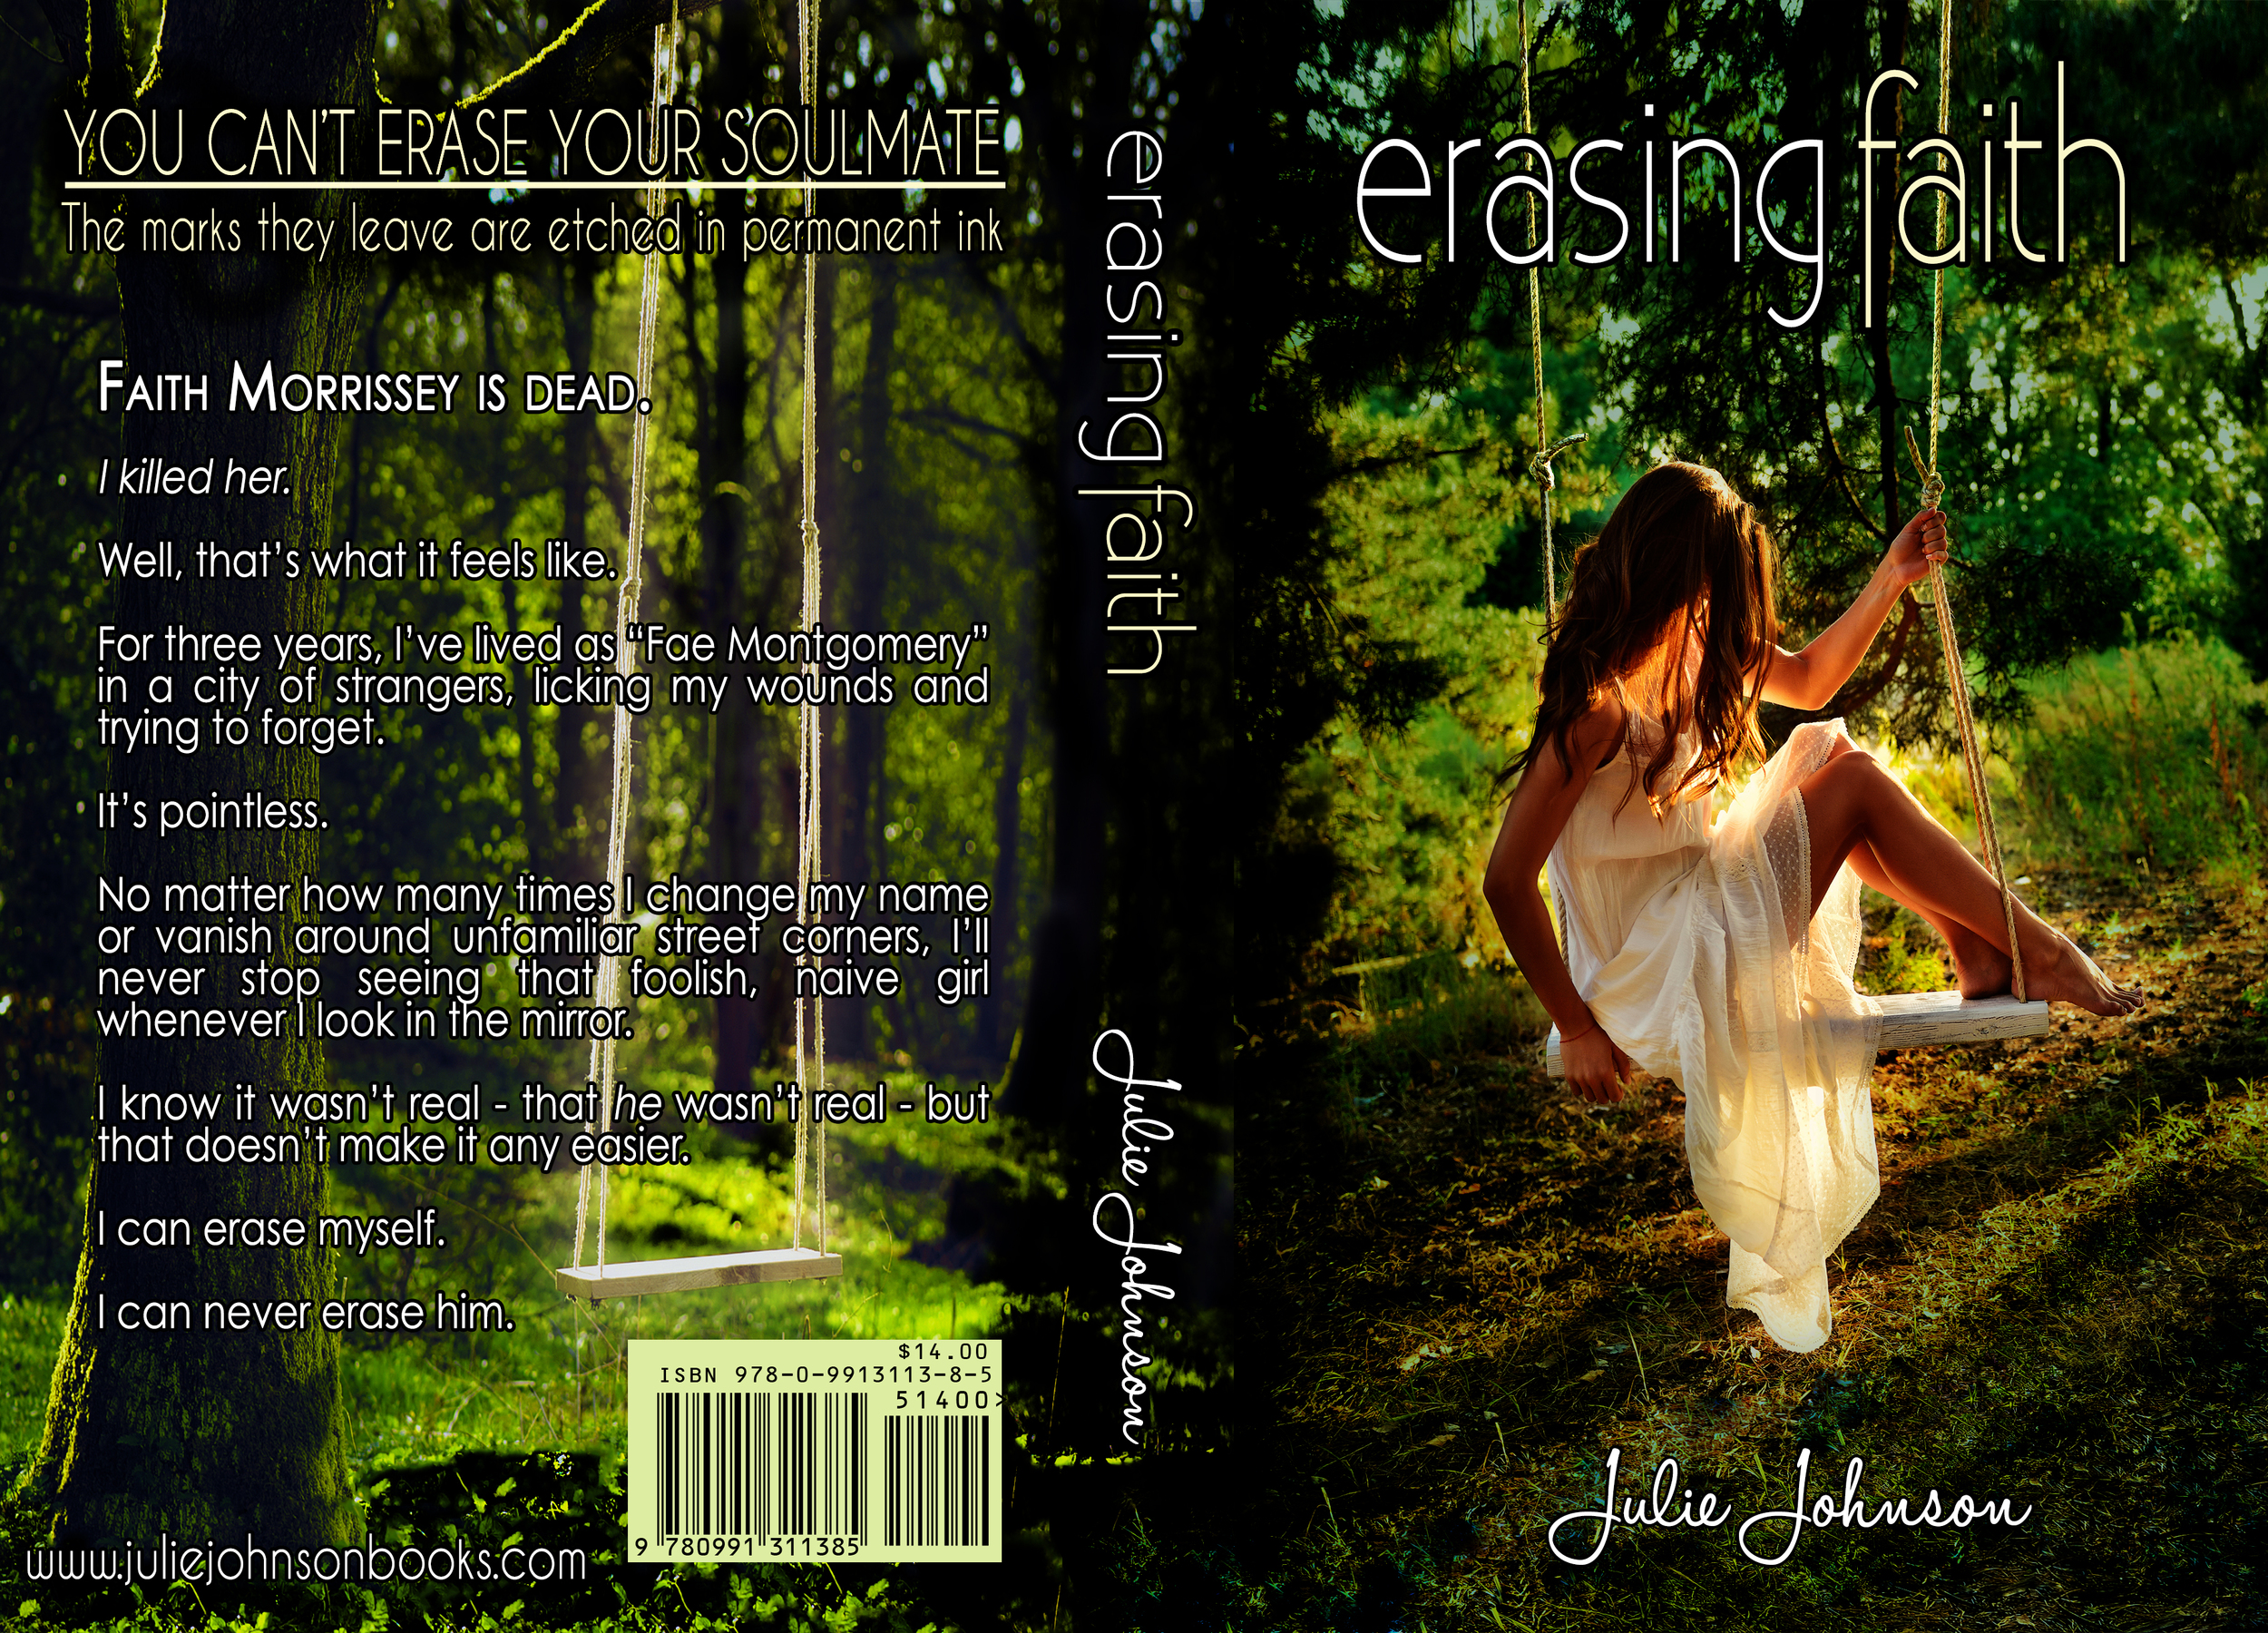 Erasing Faith full new cover